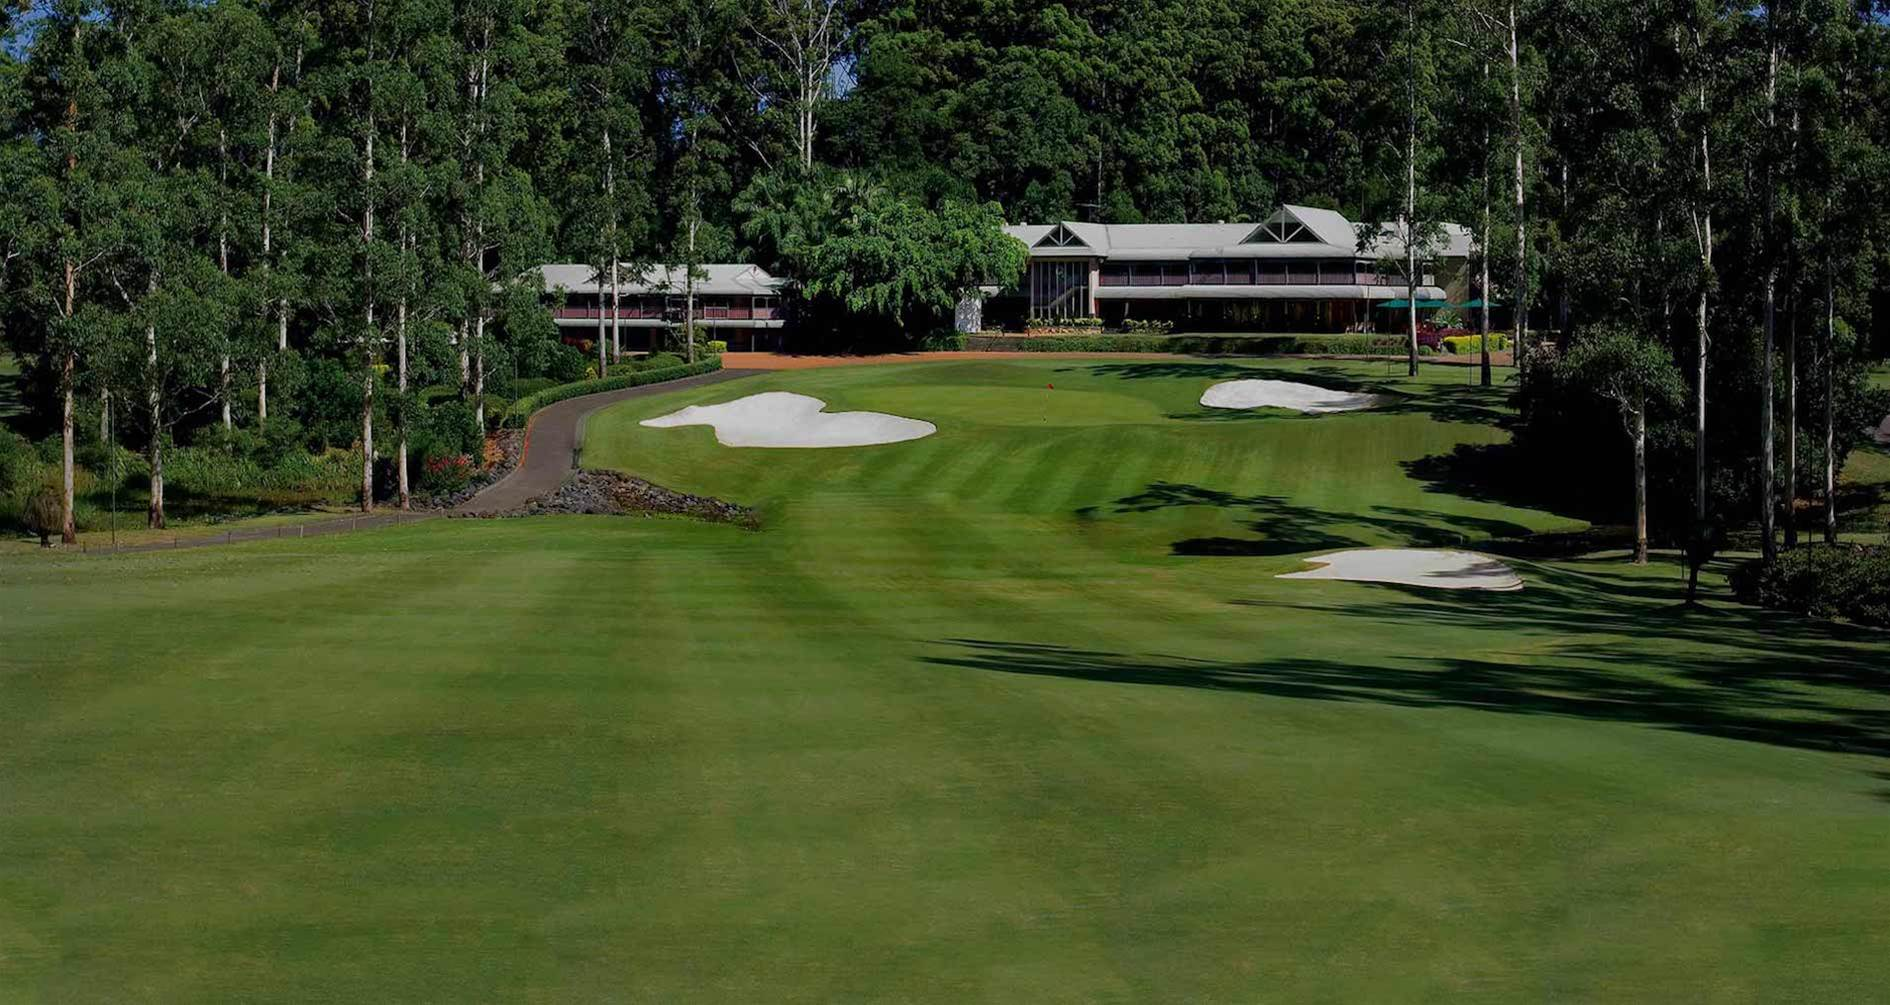 ALPG Tour expands with two big events for Coffs Harbour